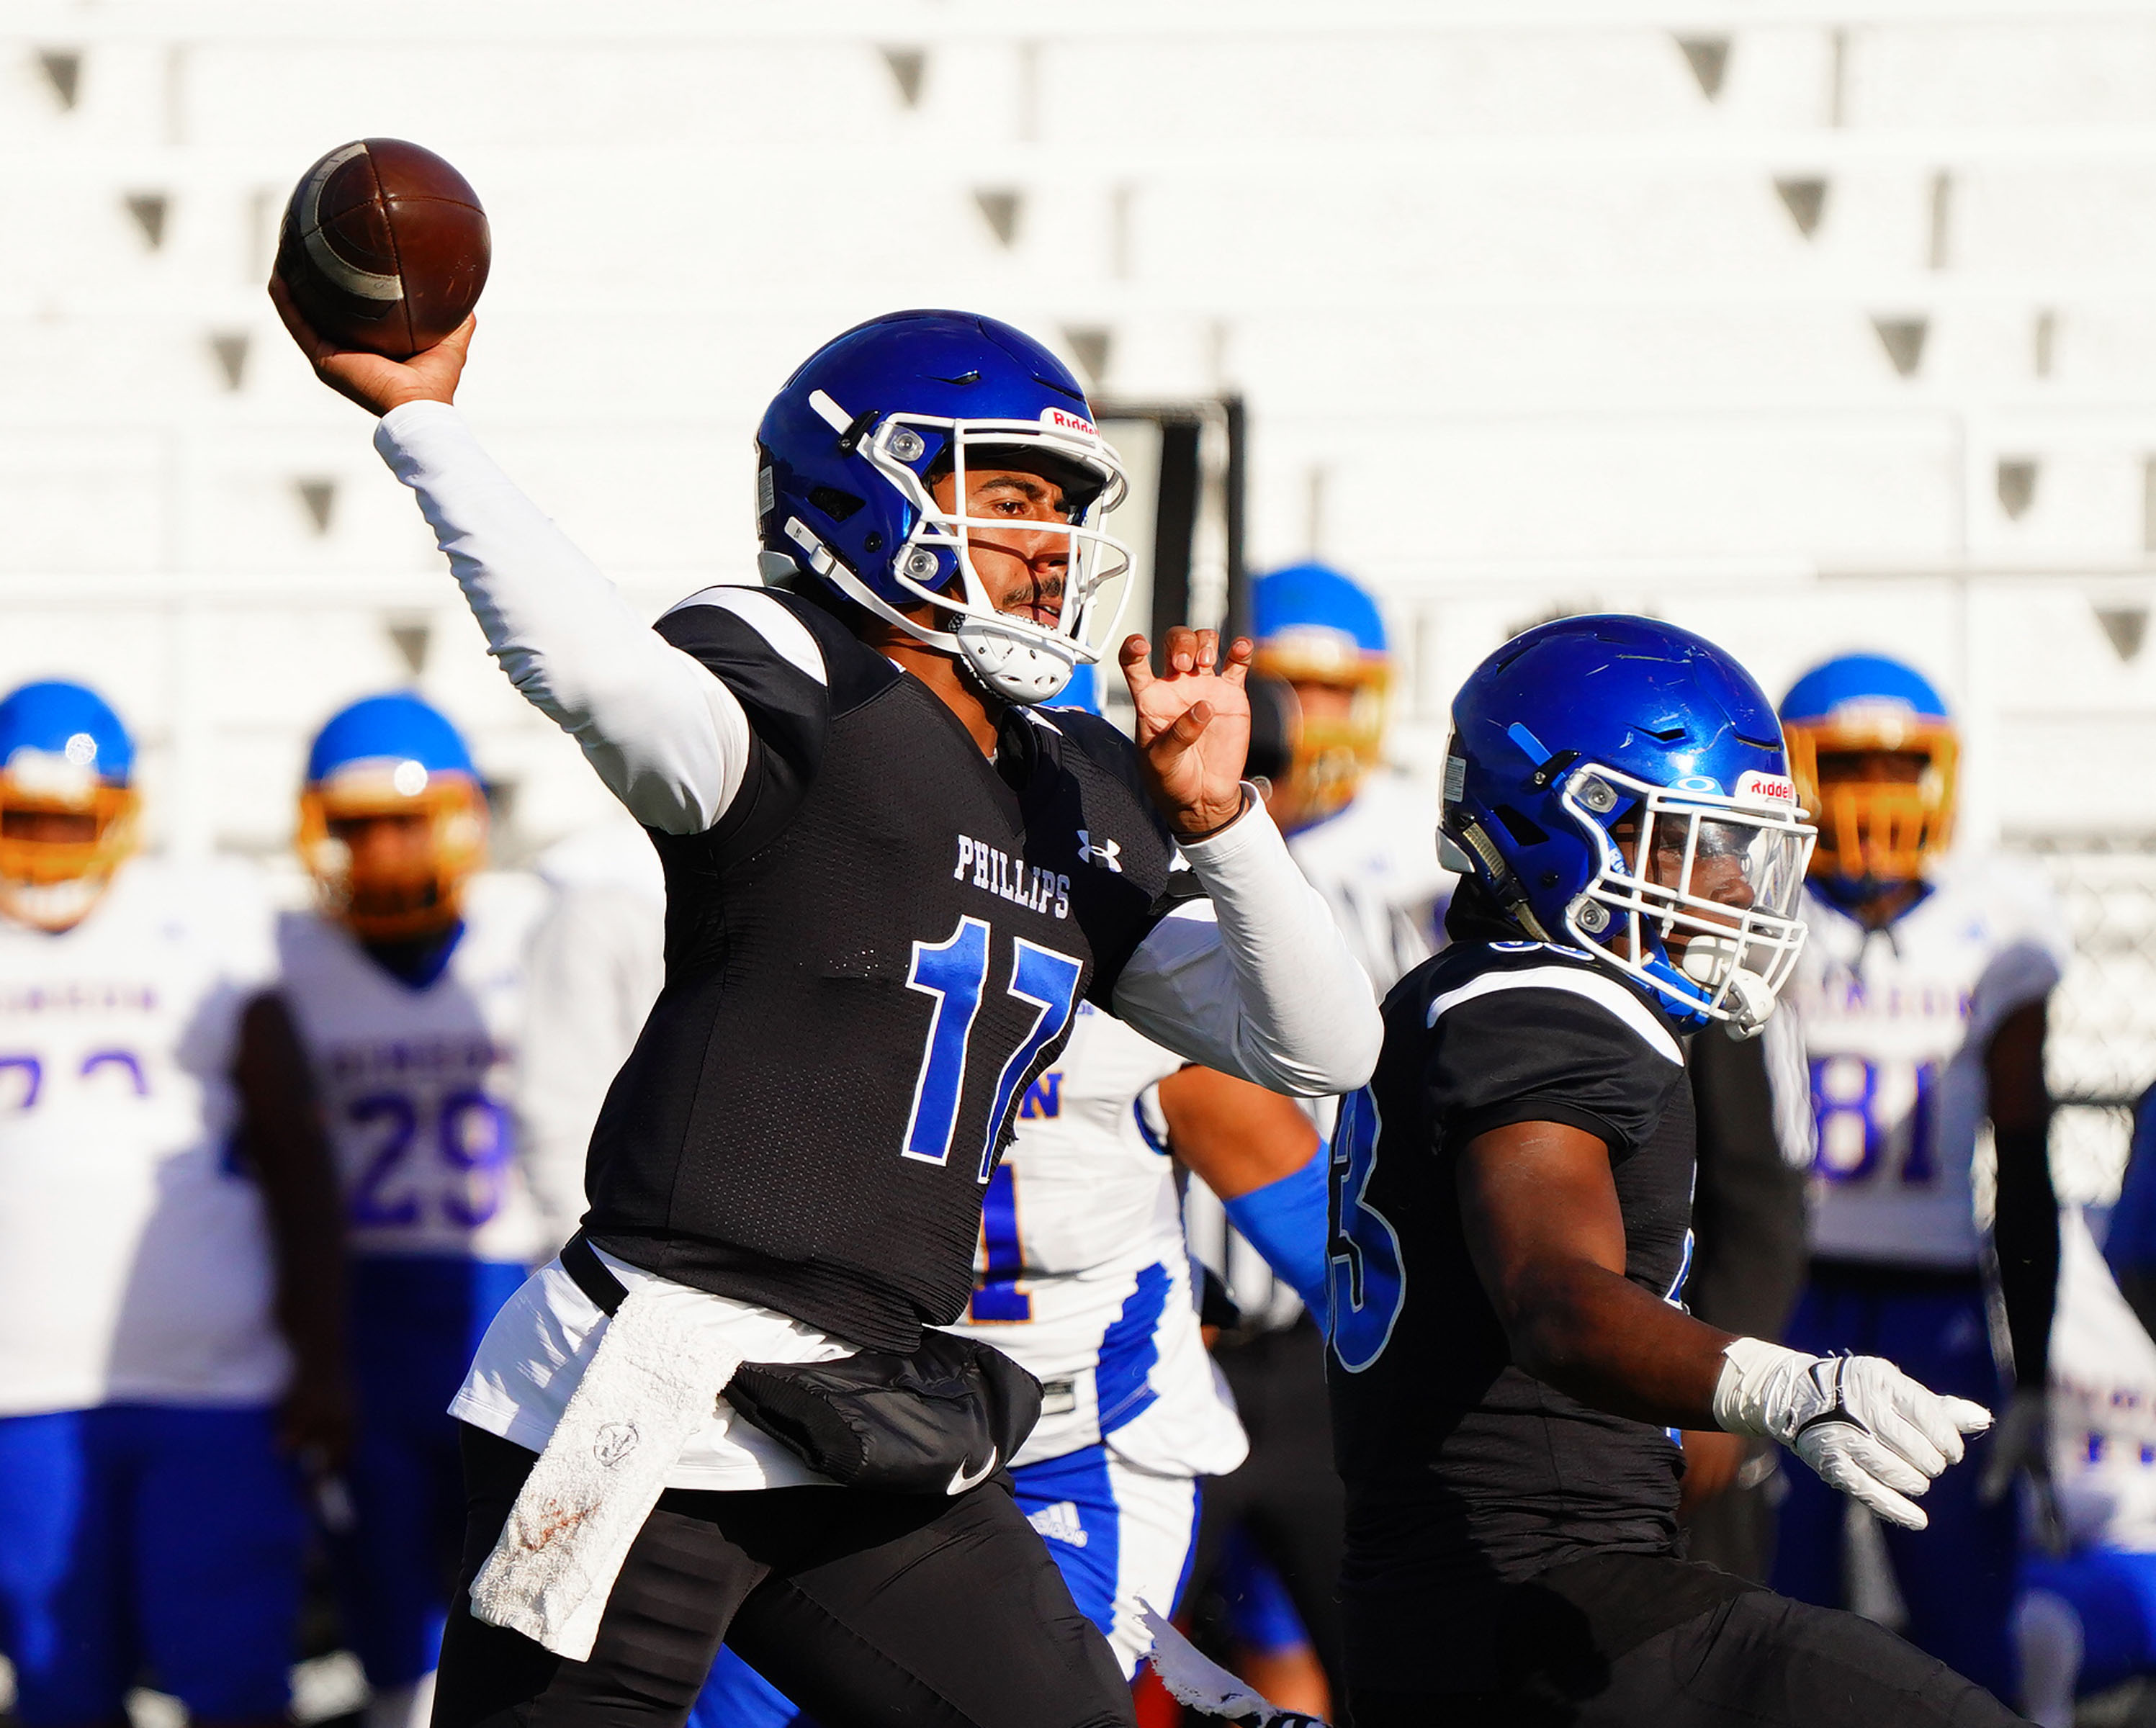 Phillips's Tyler Turner (17) looks for a receiver against Simeon.